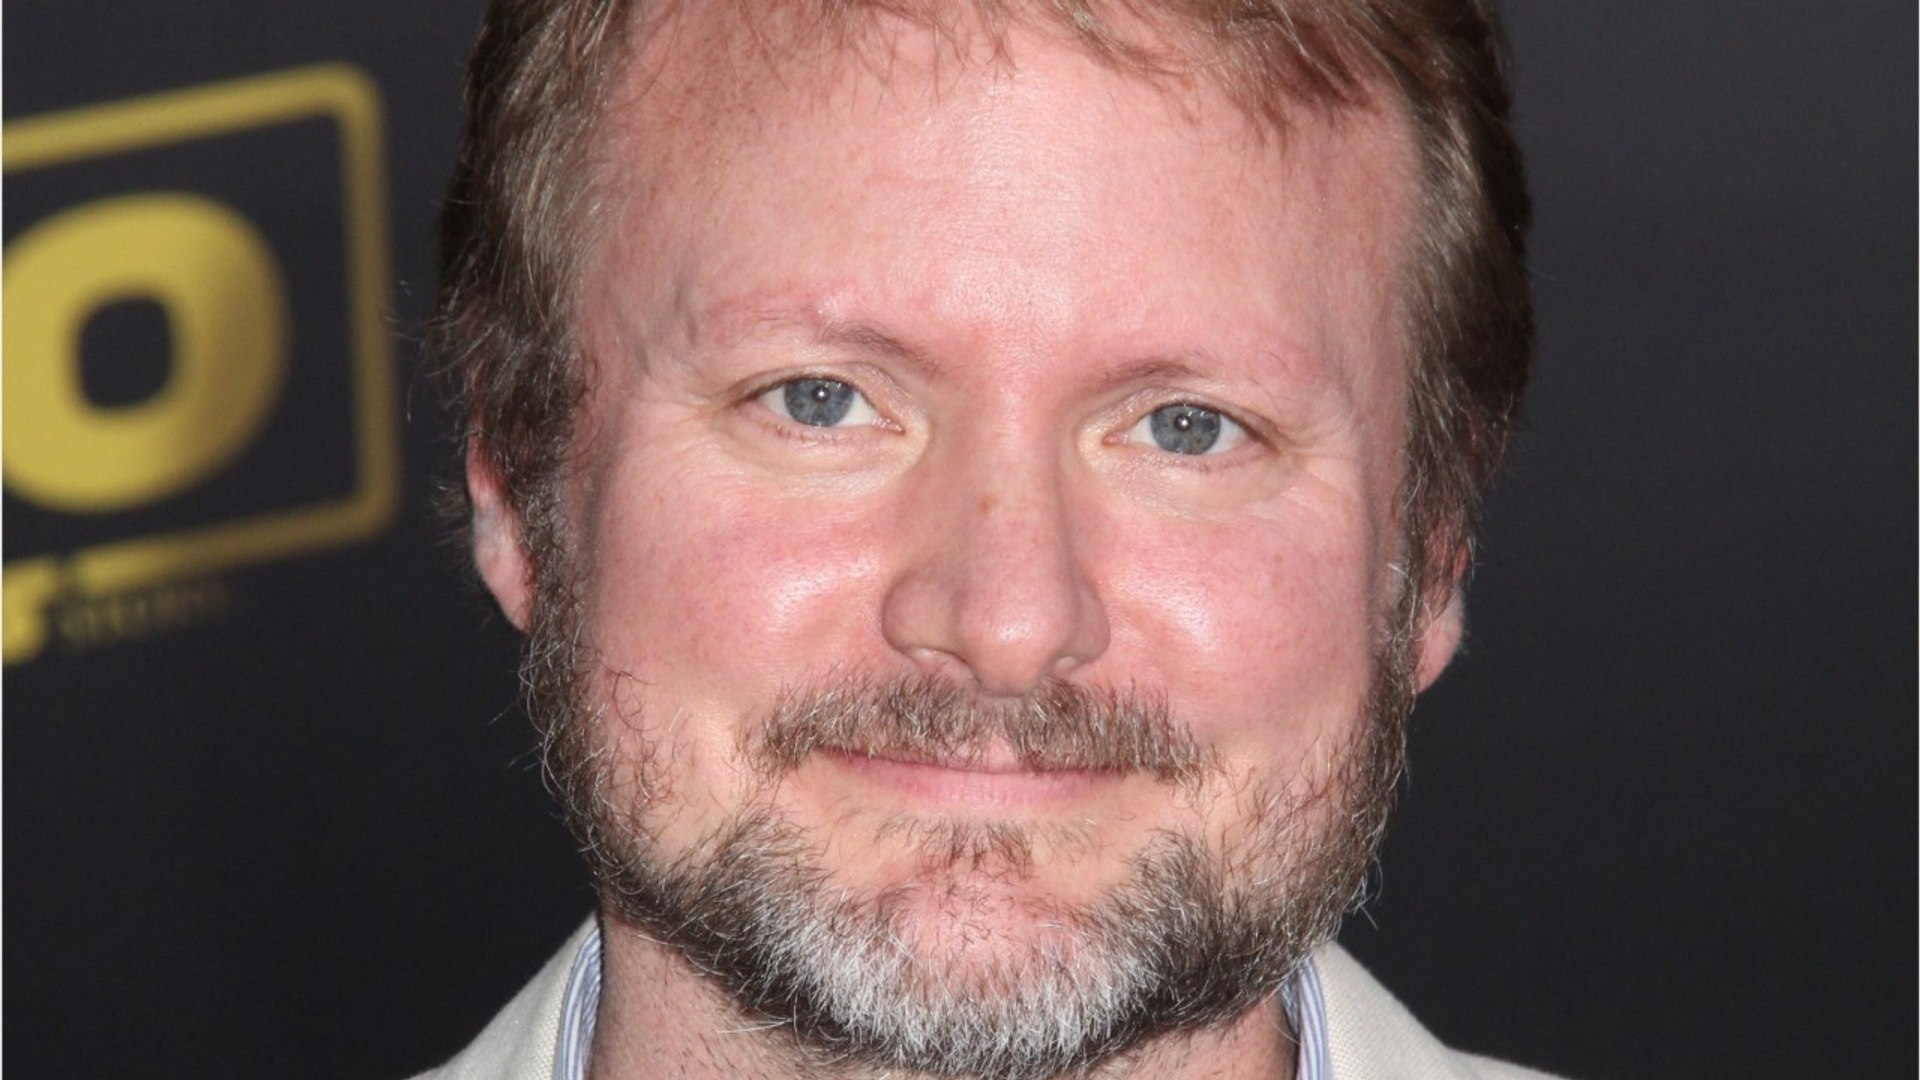 'Star Wars' Director Rian Johnson Deleted 20,000 Tweets